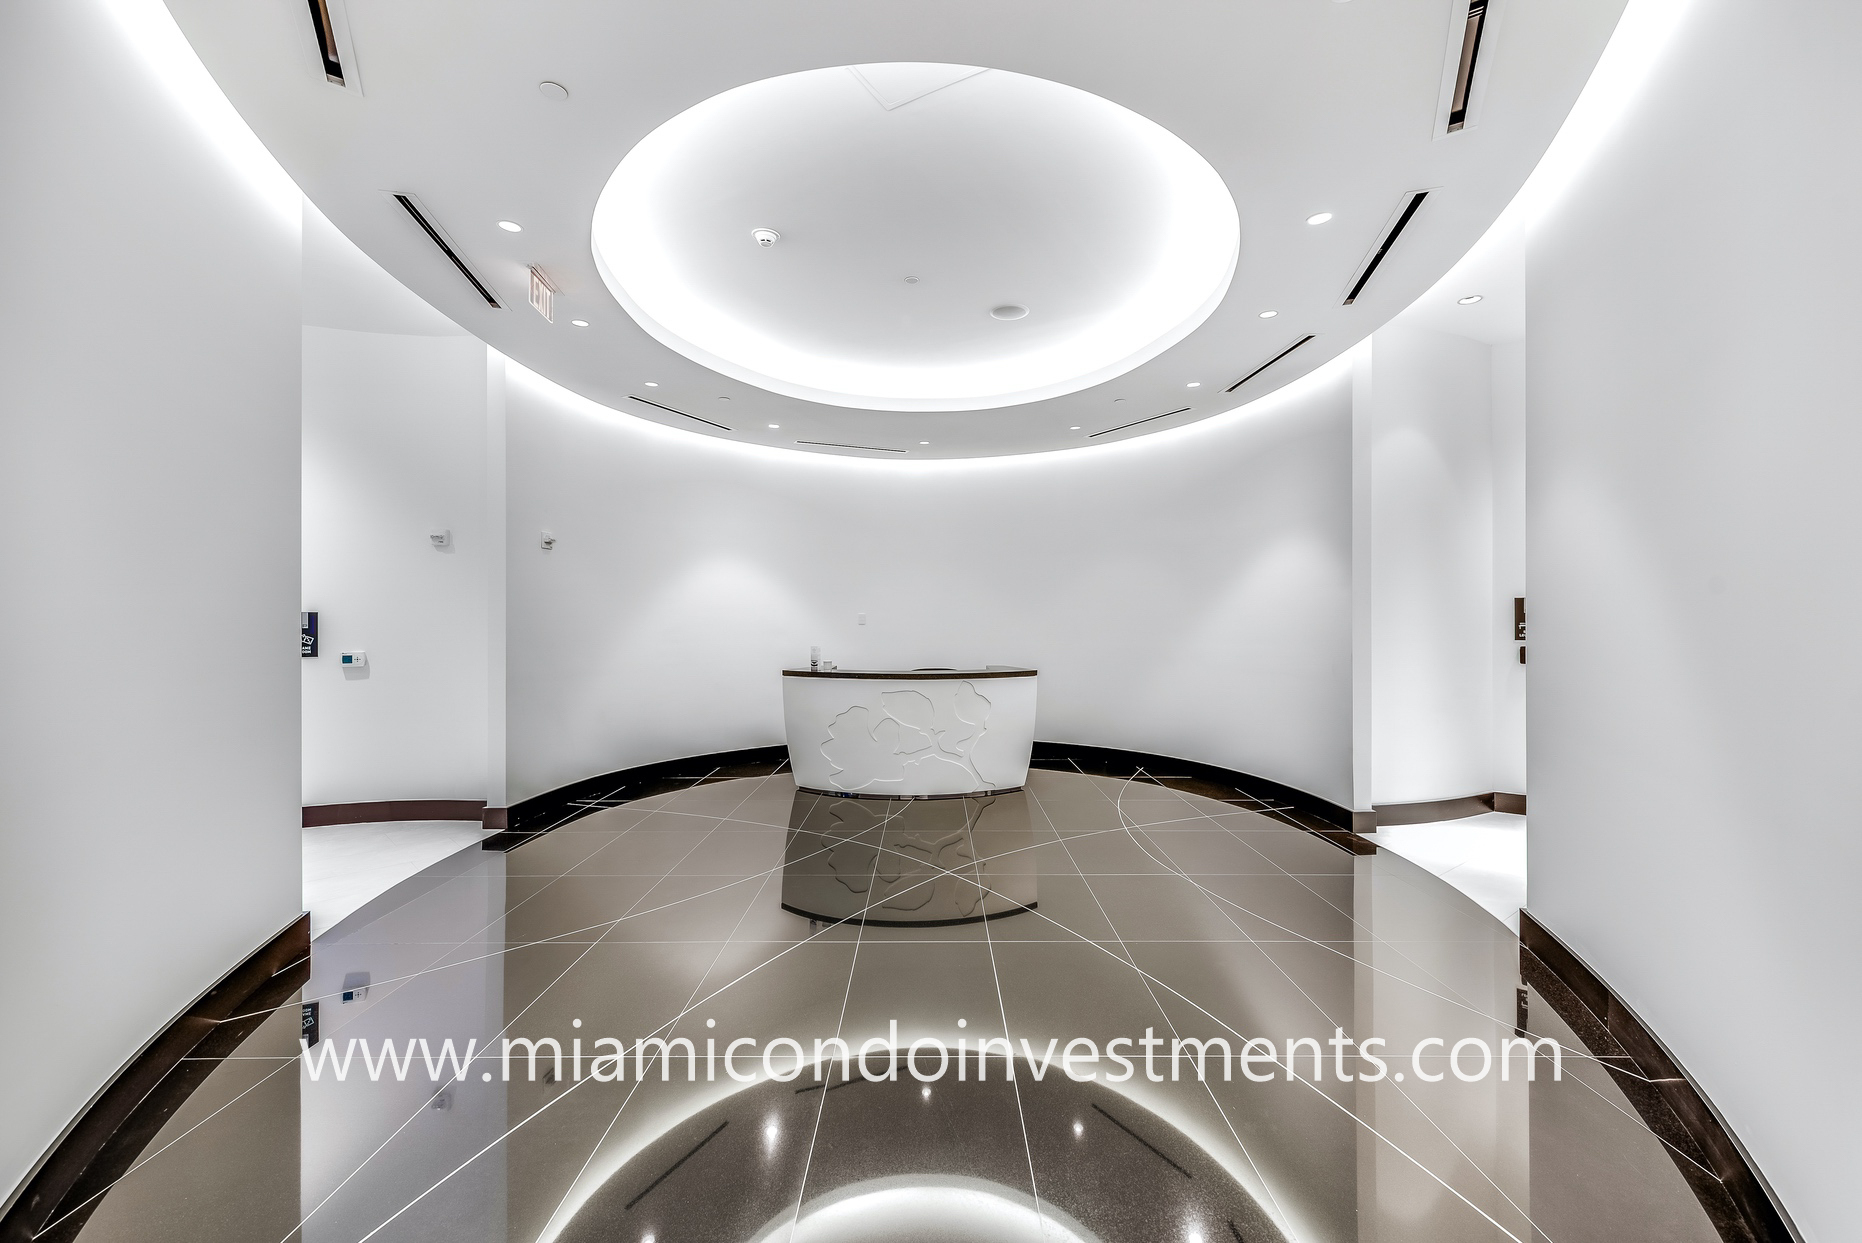 Paramount Miami Worldcenter spa entrance